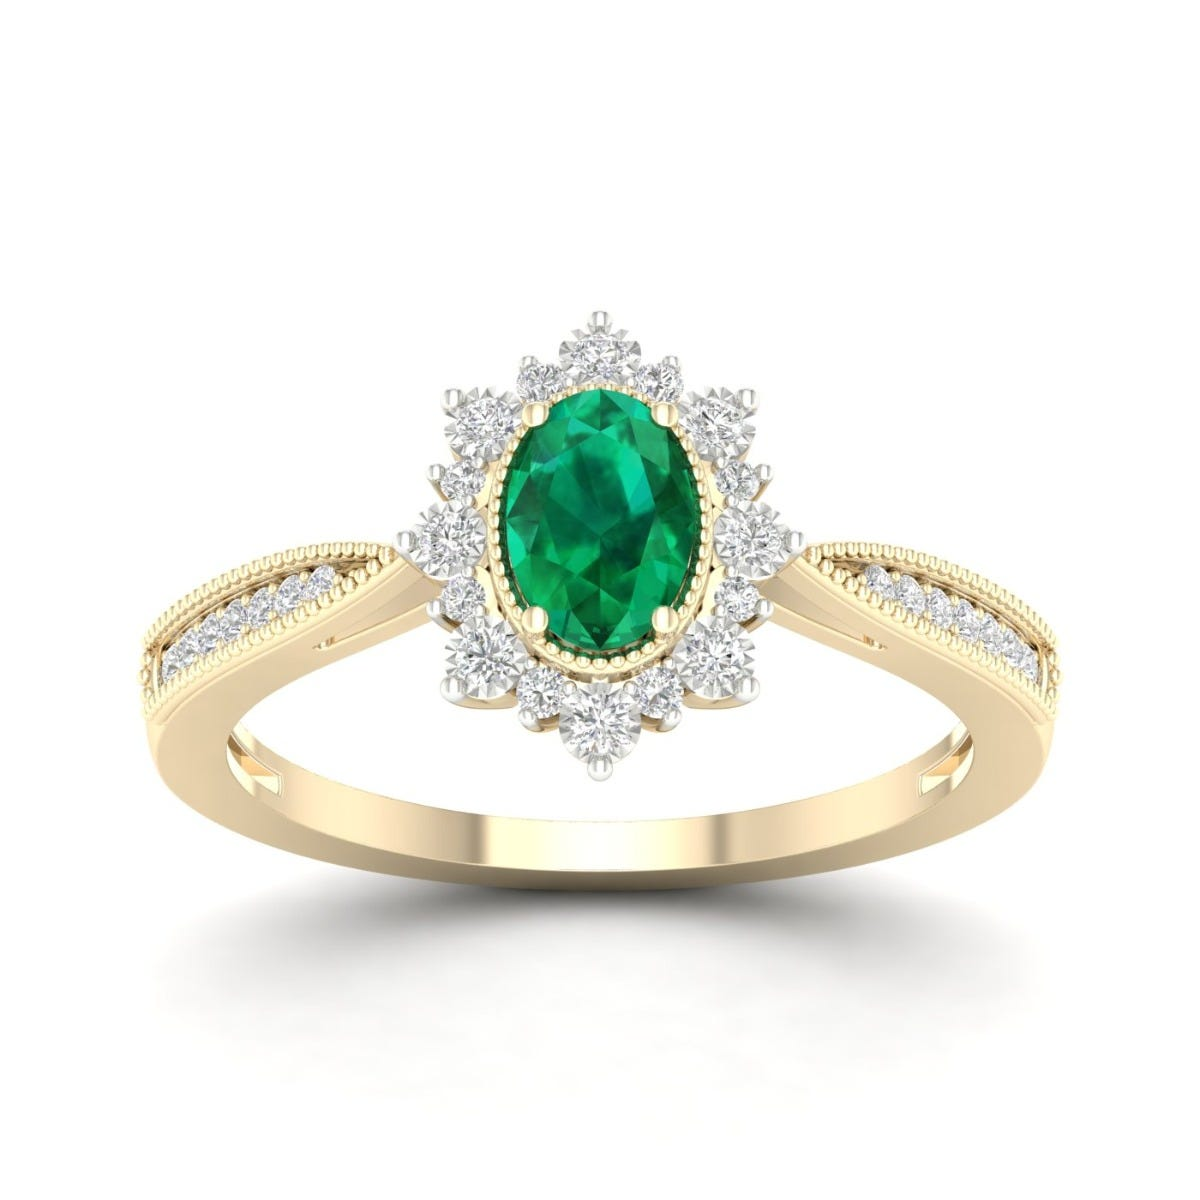 Oval Emerald Vintage Halo Ring in 10k Yellow Gold